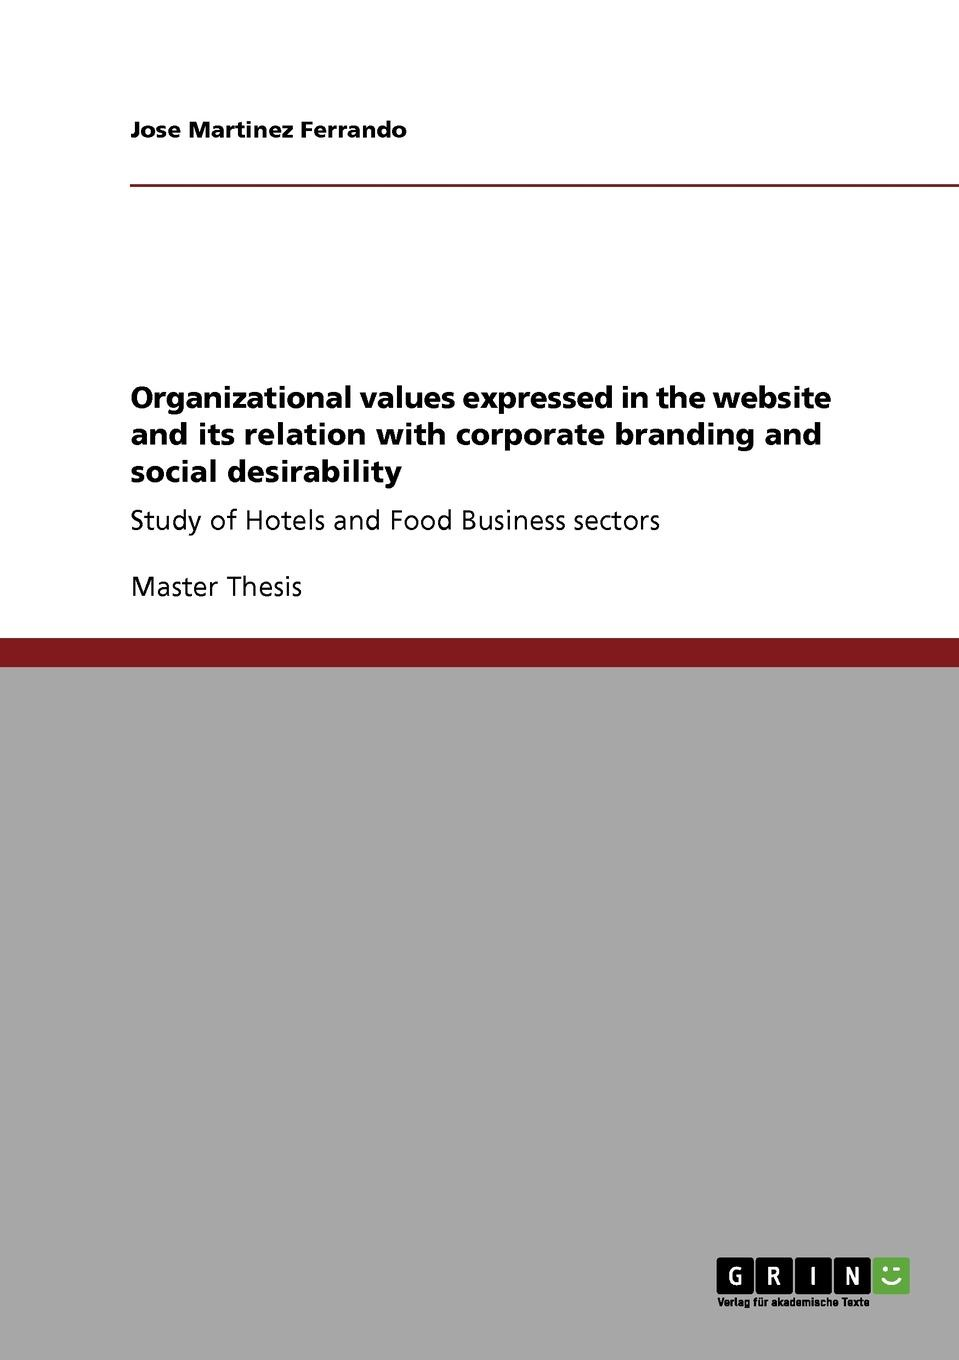 Jose Martinez Ferrando Organizational values expressed in the website and its relation with corporate branding and social desirability недорго, оригинальная цена